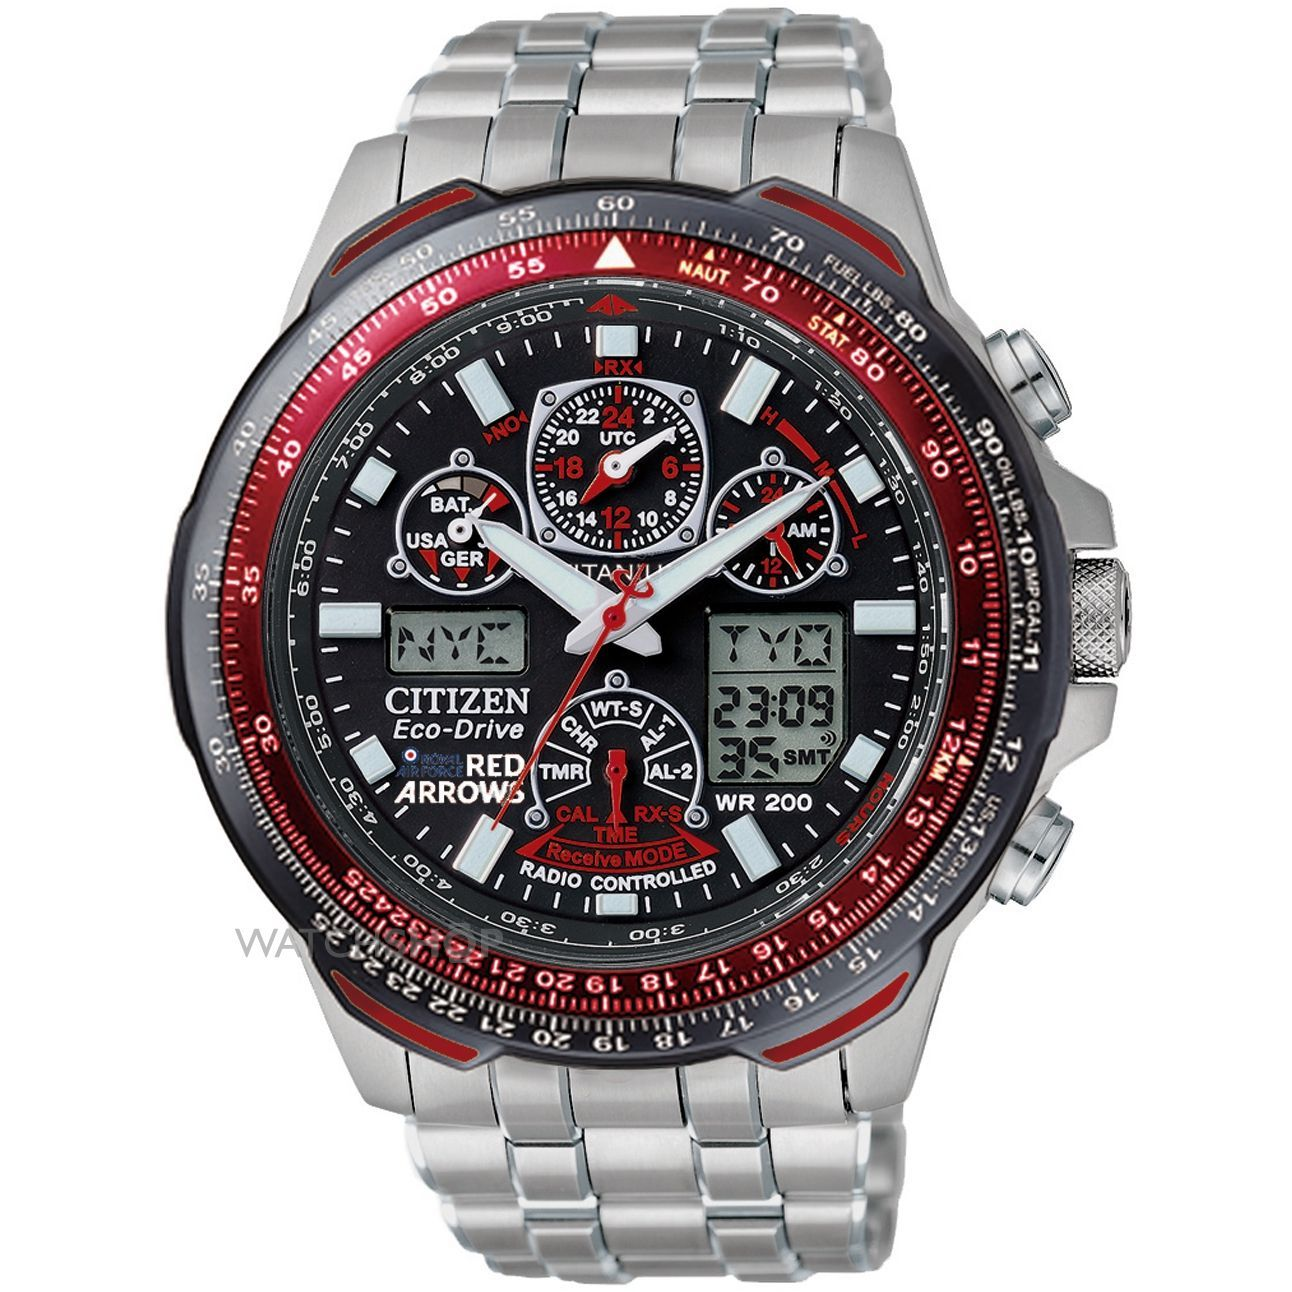 Citizen Men's Skyhawk A-T Red Arrows Titanium Alarm Chronograph Radio Controlled Eco-Drive Watch